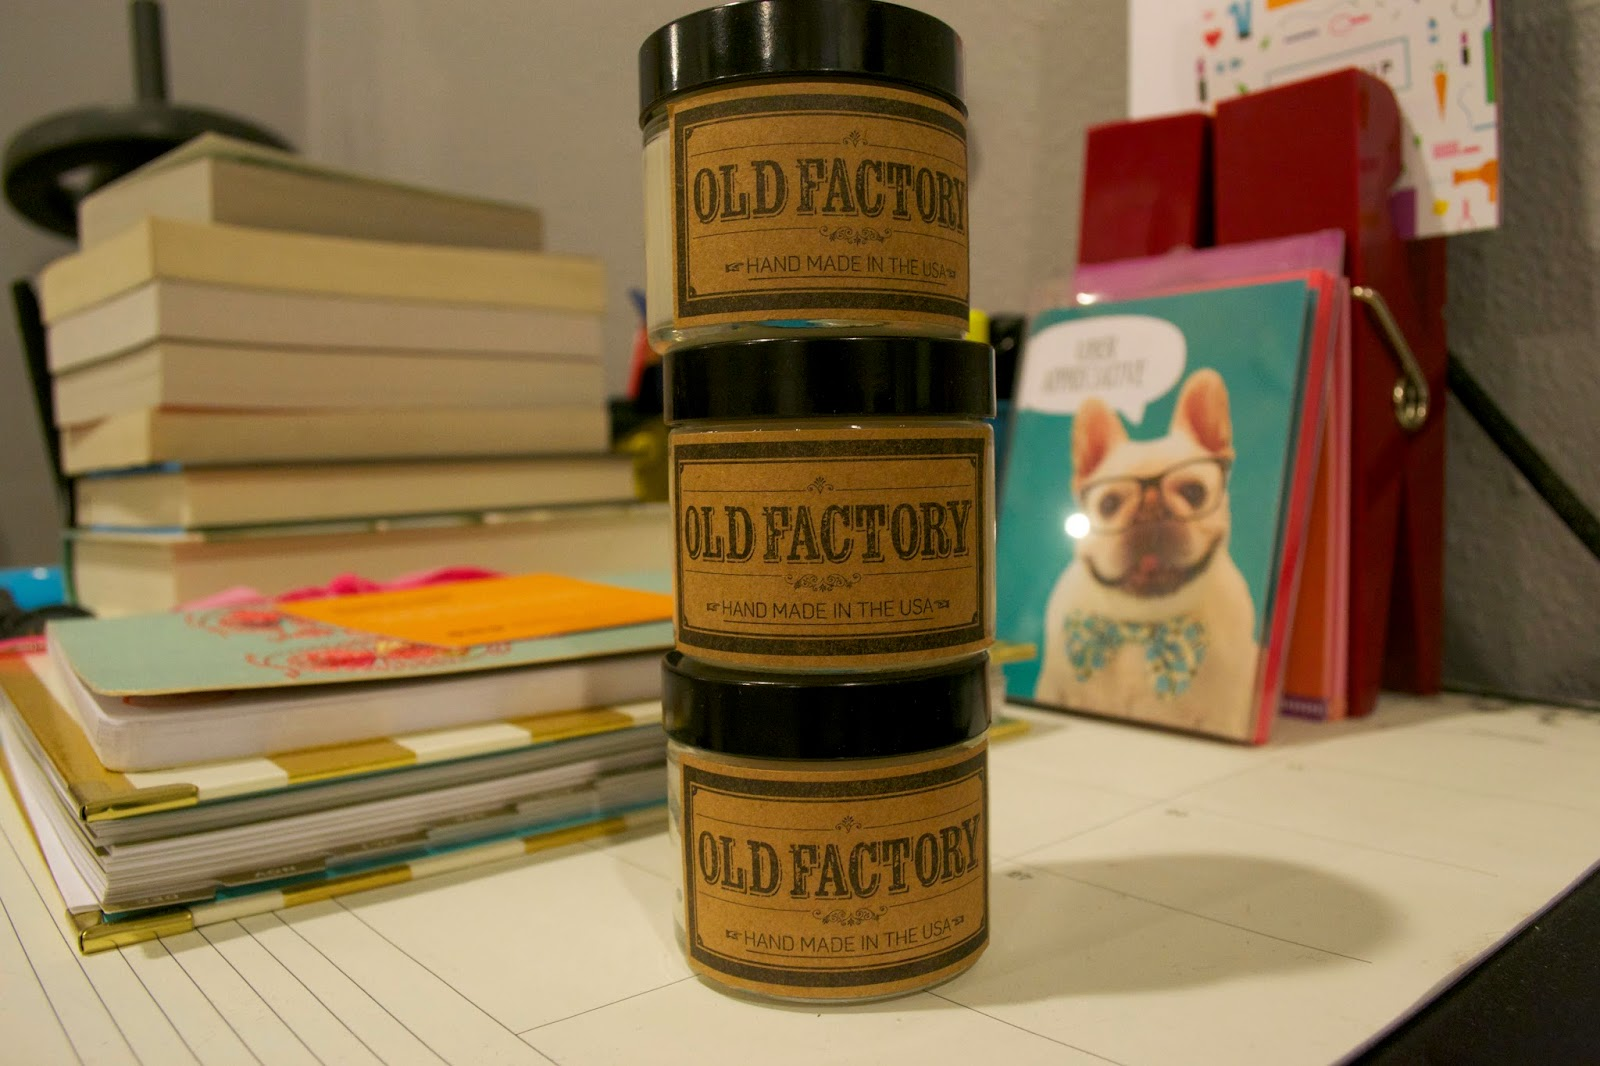 Old Factory Candle Review and Giveaway